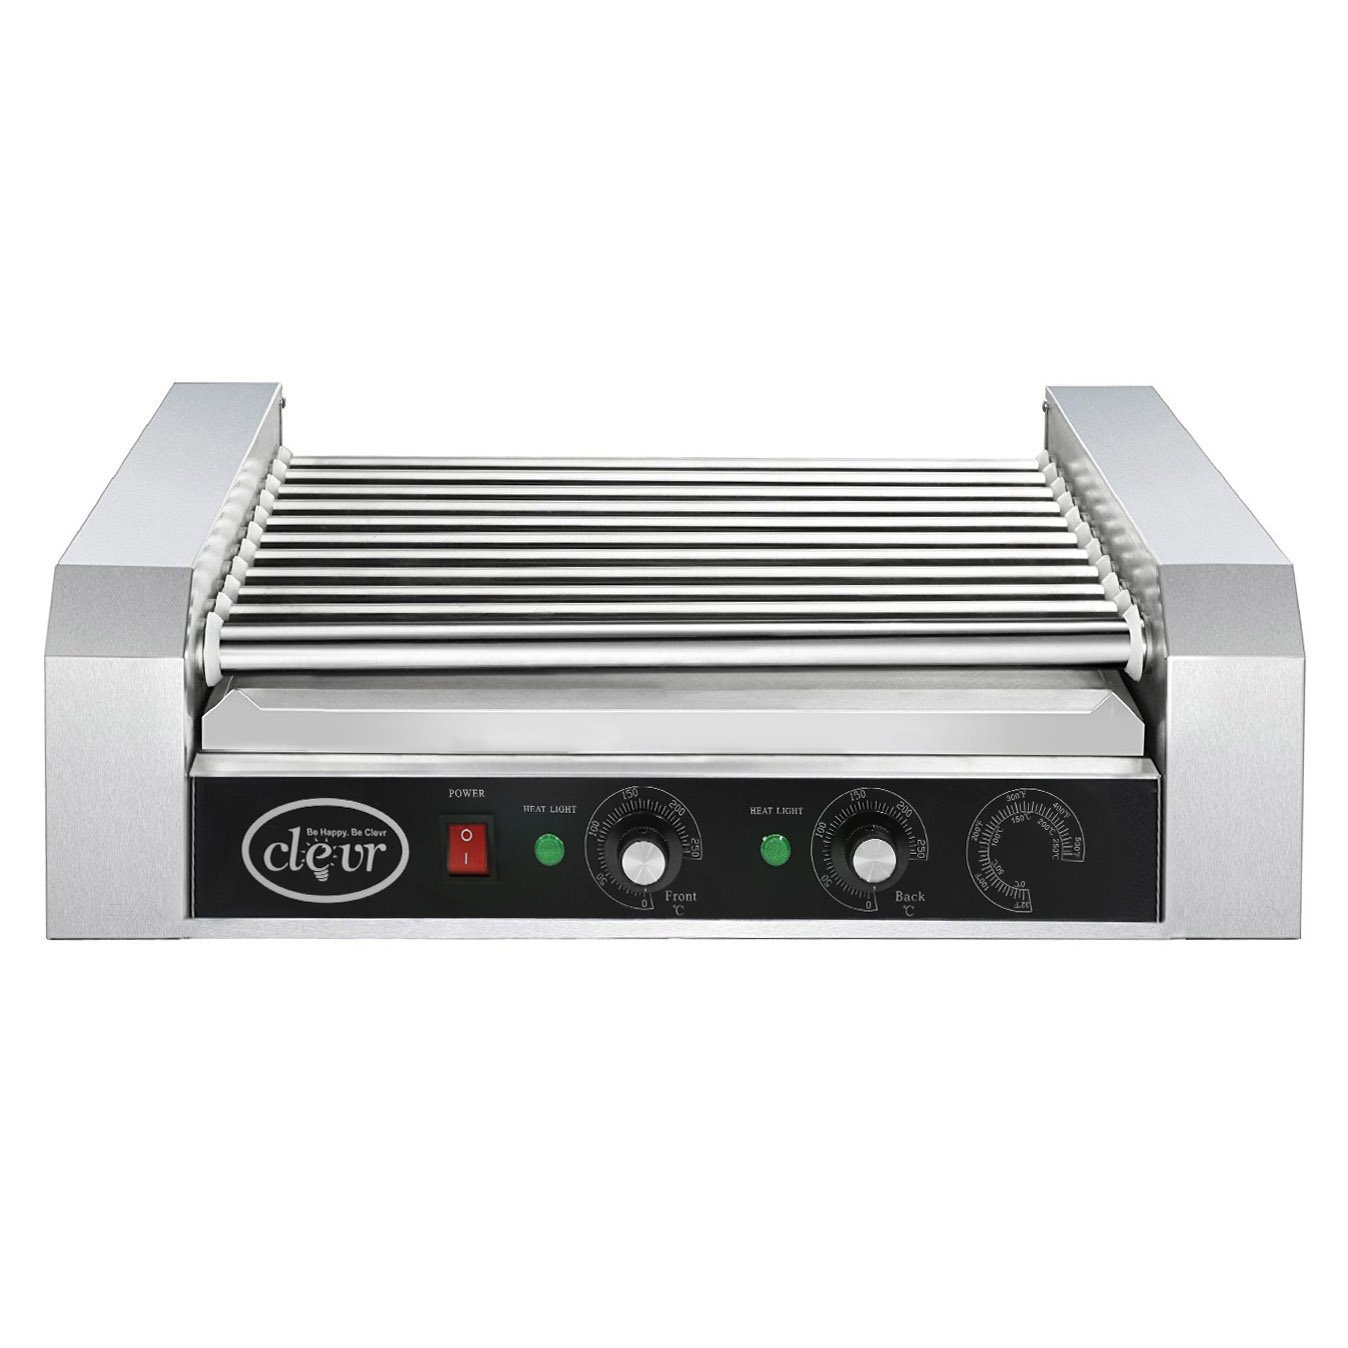 Clevr Commercial 11 Roller and 30 Hotdog Grill Cooker Warmer Hot Dog Machine by Clevr